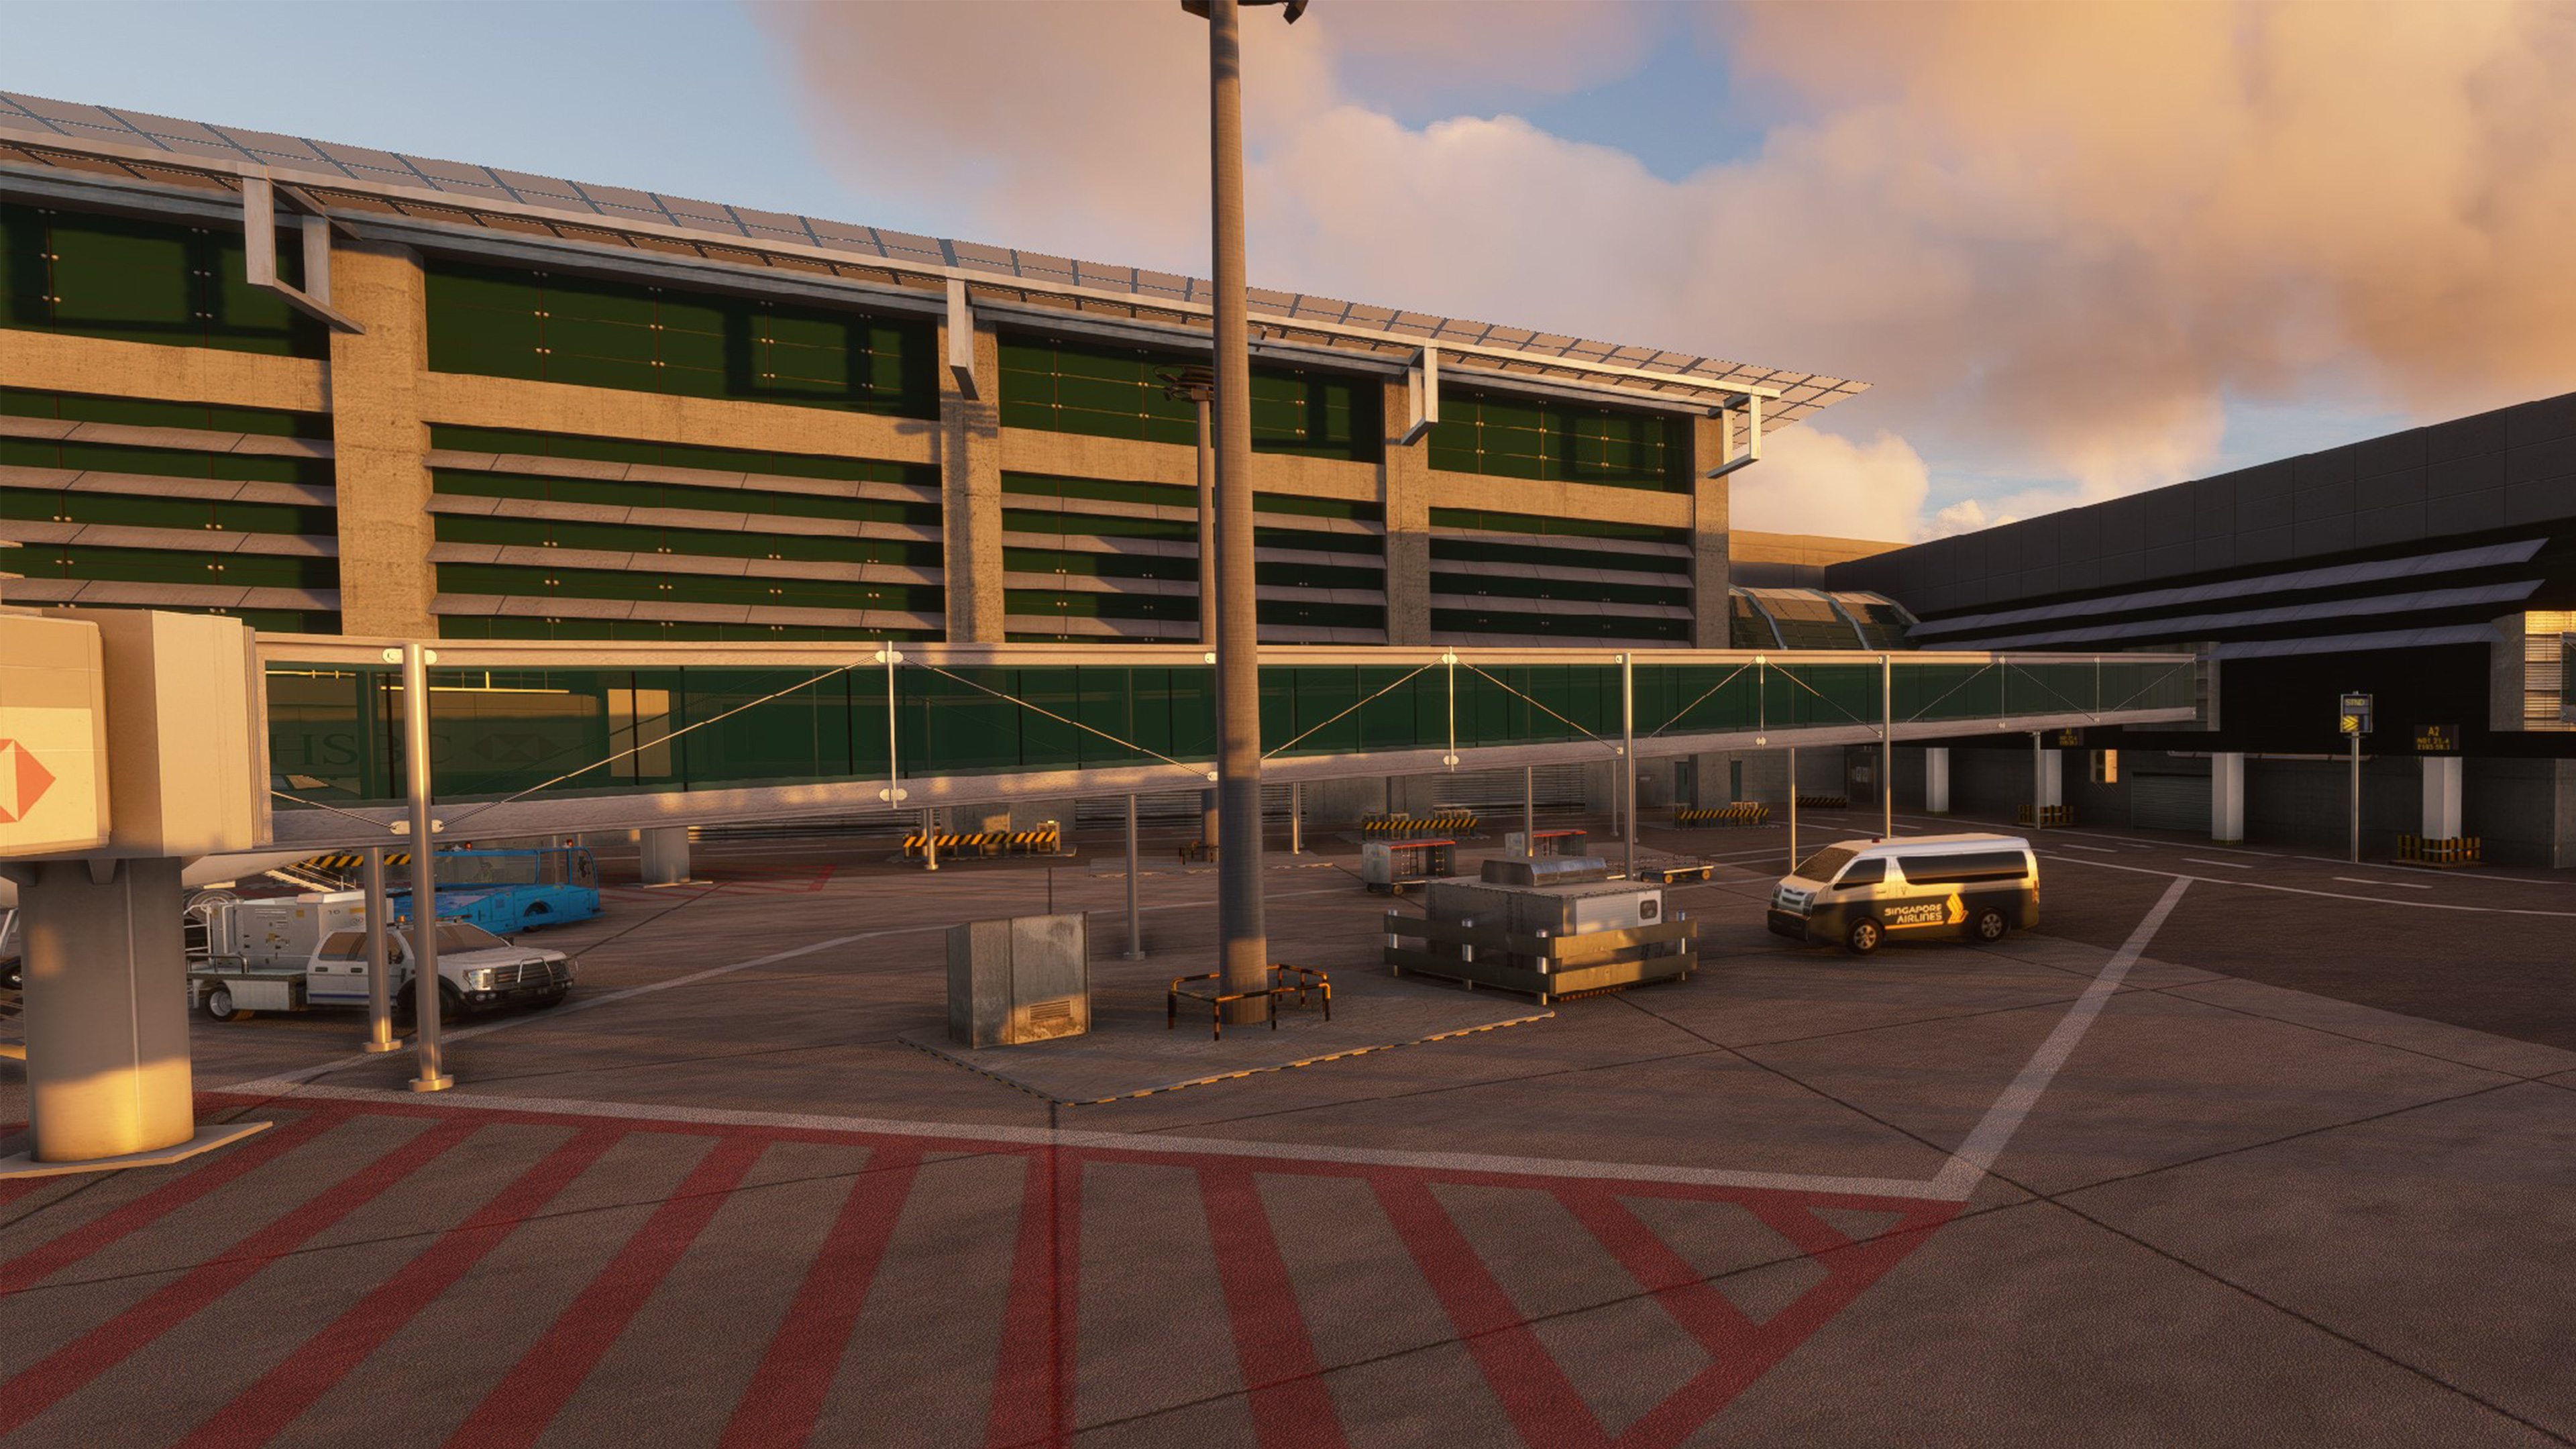 CLOUDSURF ASIA SIMULATIONS - WSSS SINGAPORE CHANGI AIRPORT MSFS